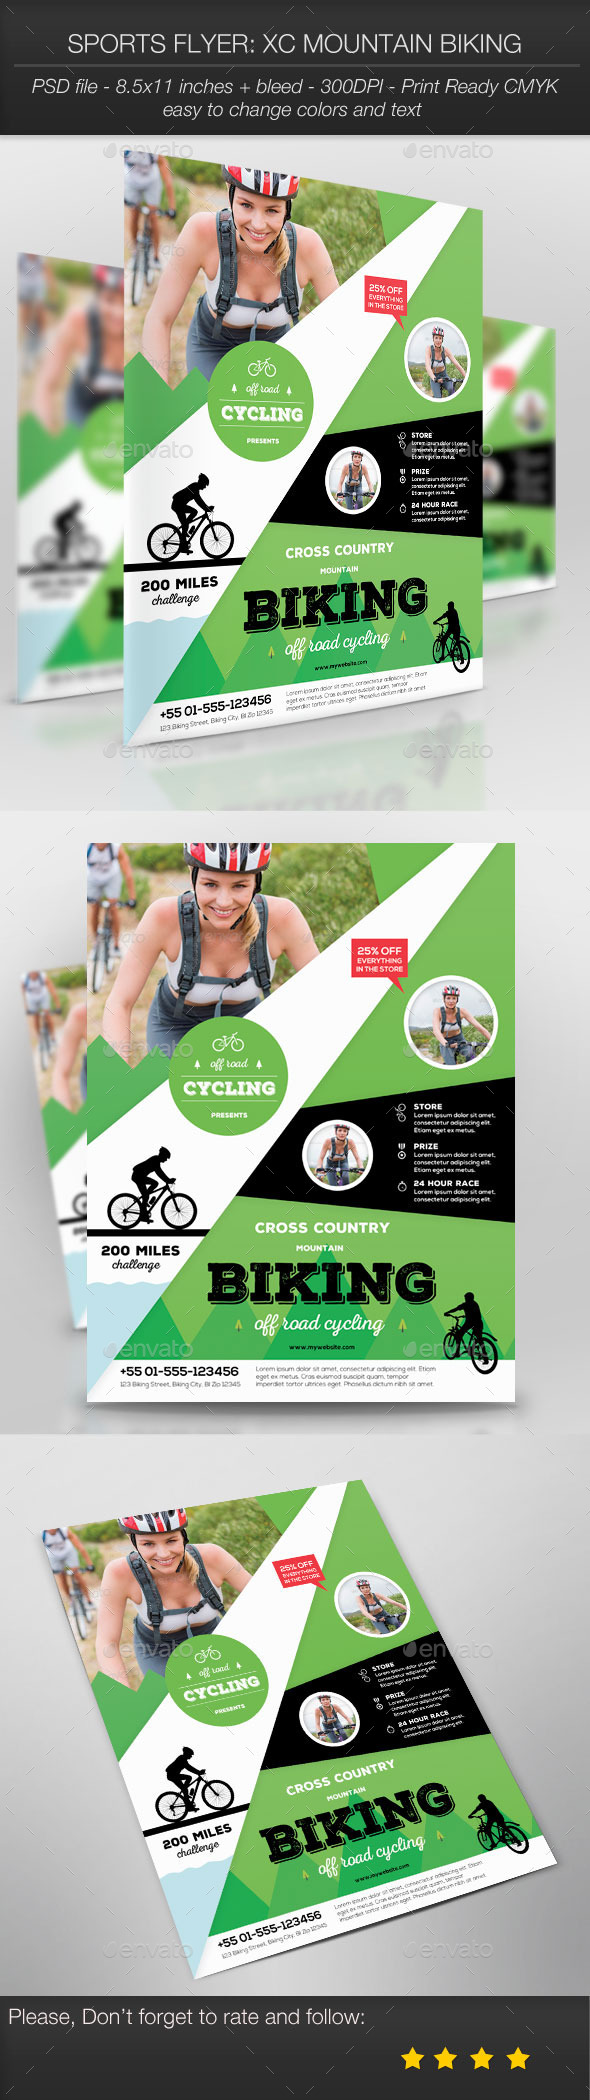 Sports Flyer: XC Mountain Biking - Sports Events